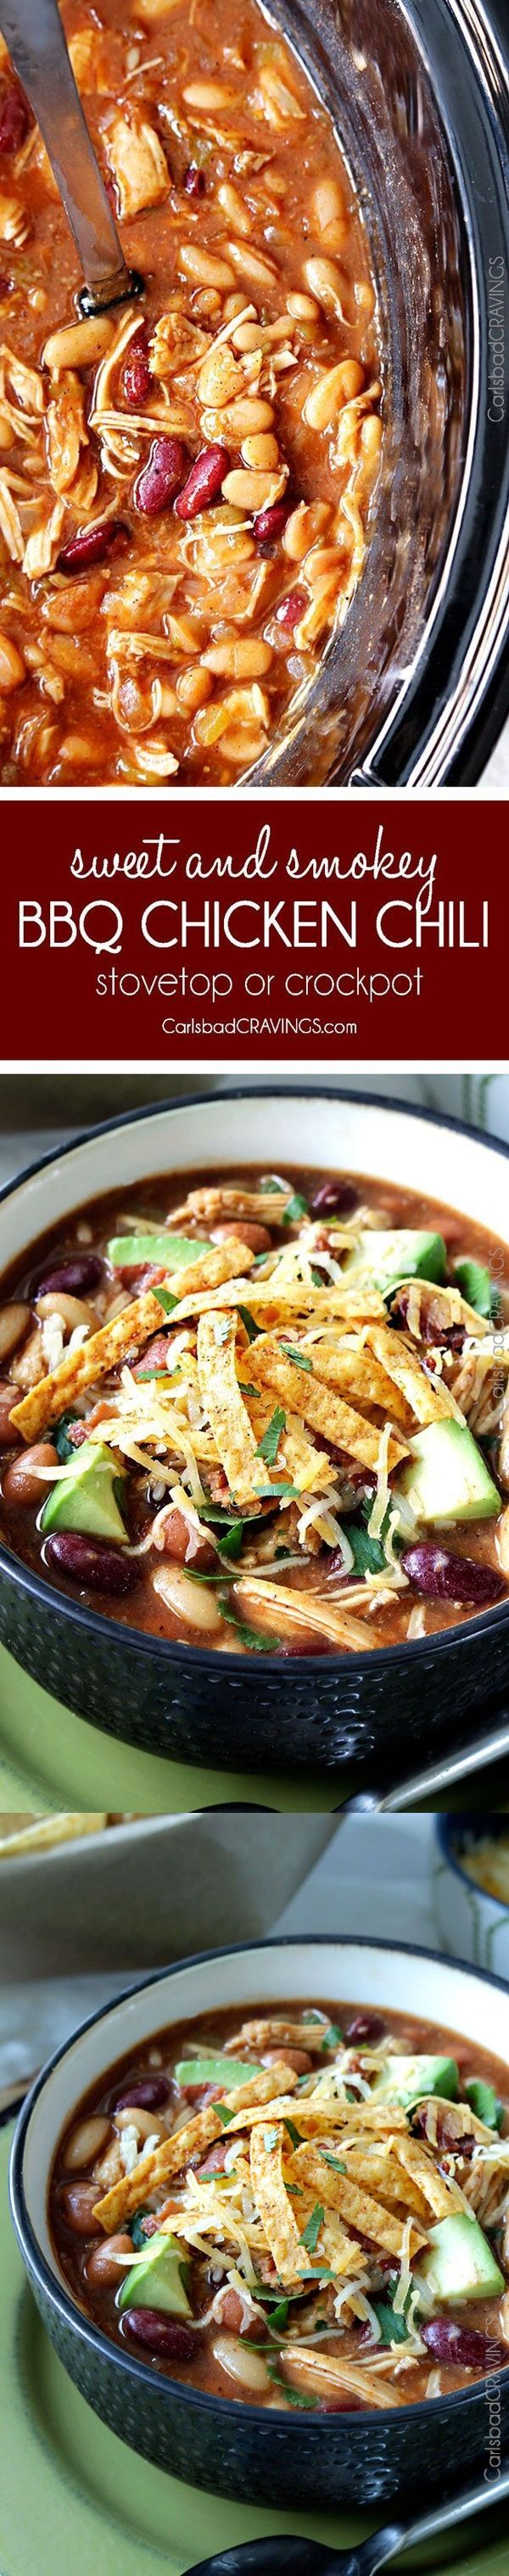 Smoky BBQ Chicken Chili (Slow Cooker or Stove Top